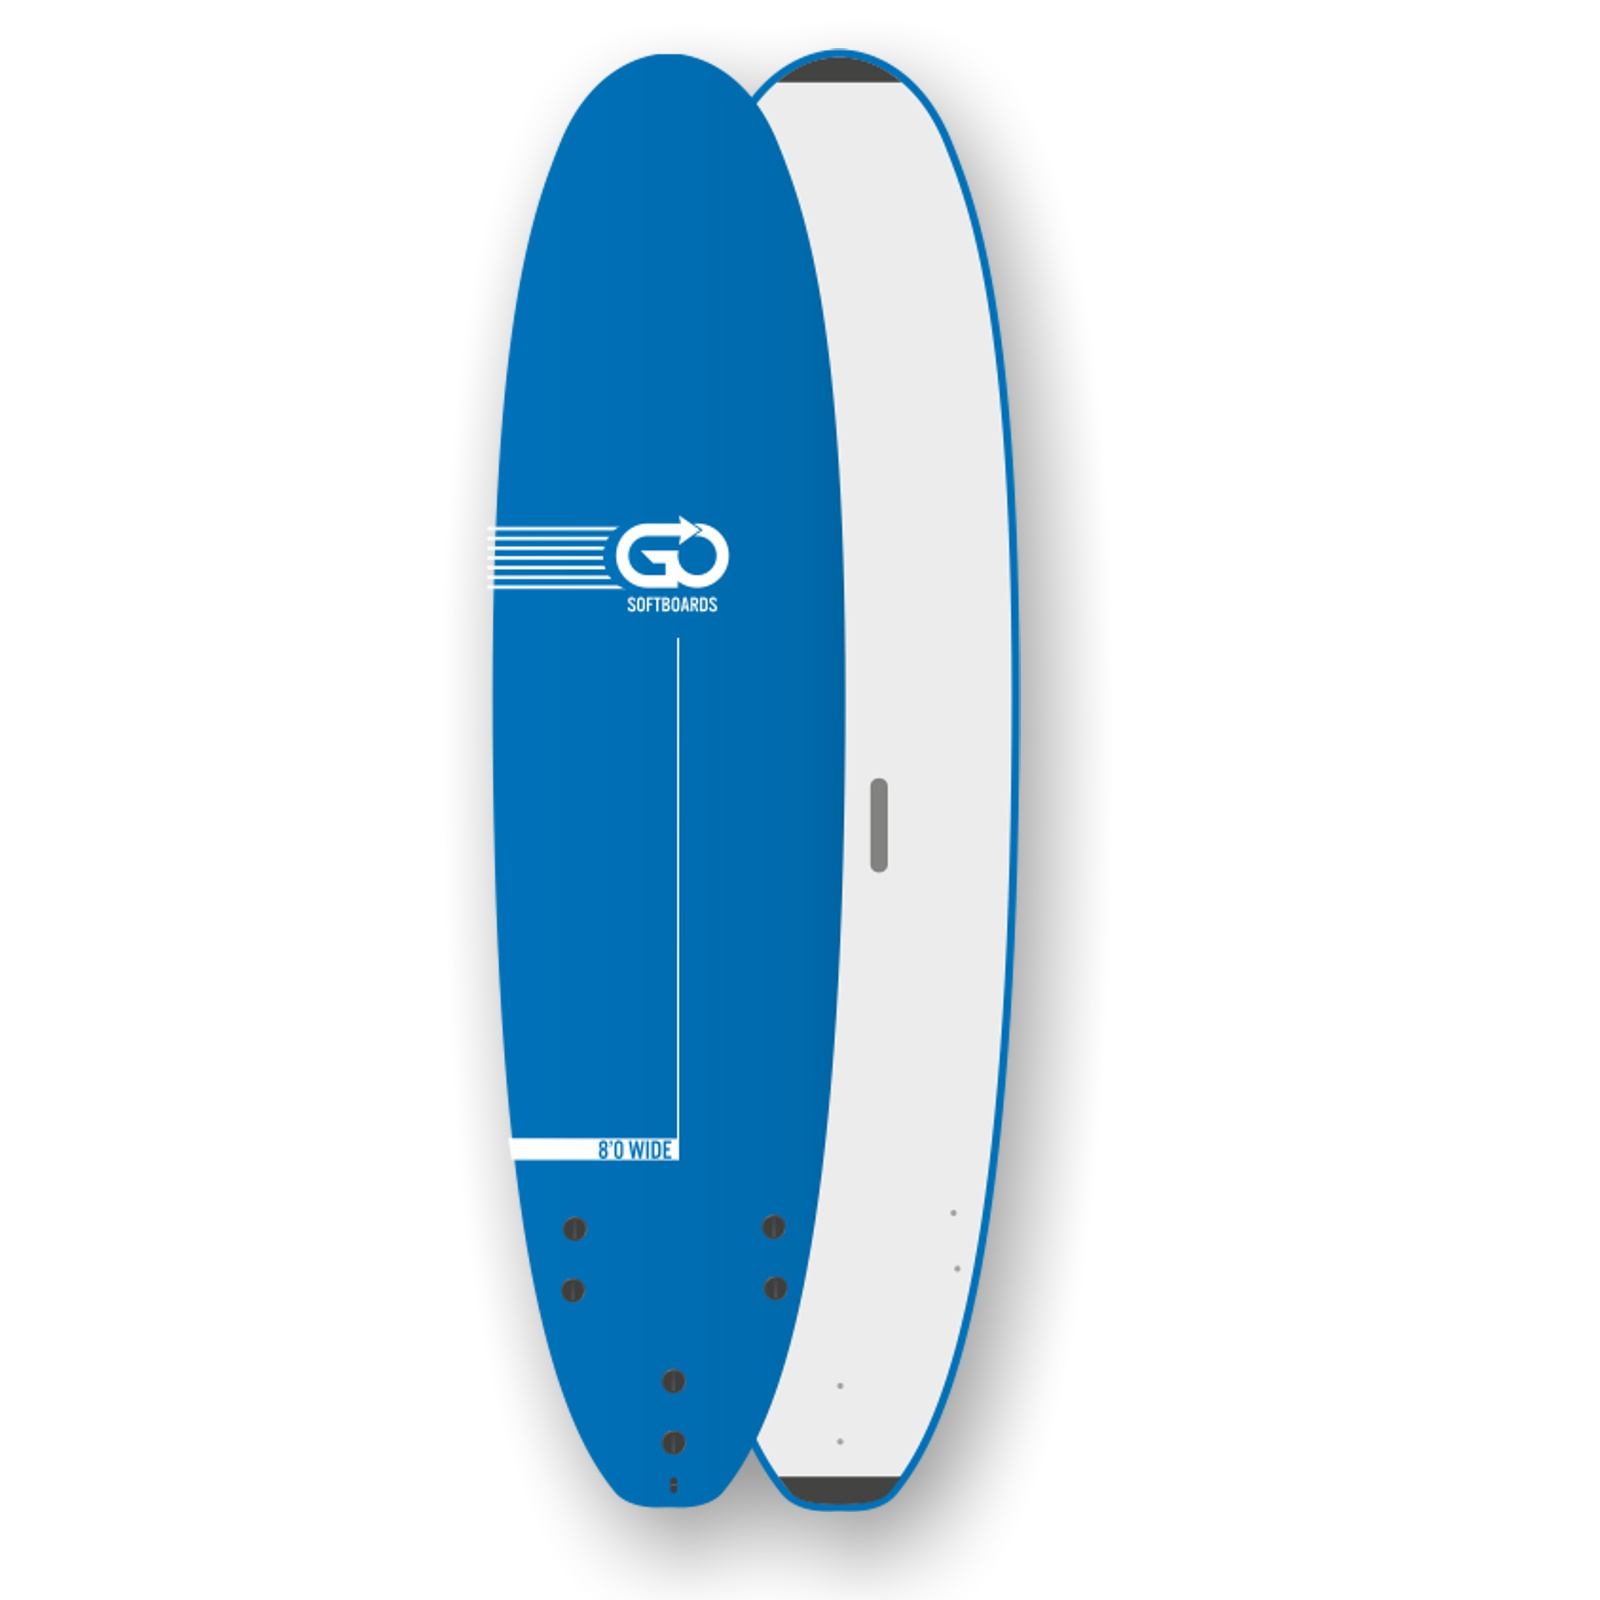 GO Softboard School Surfboard 8.0 wide body Blau